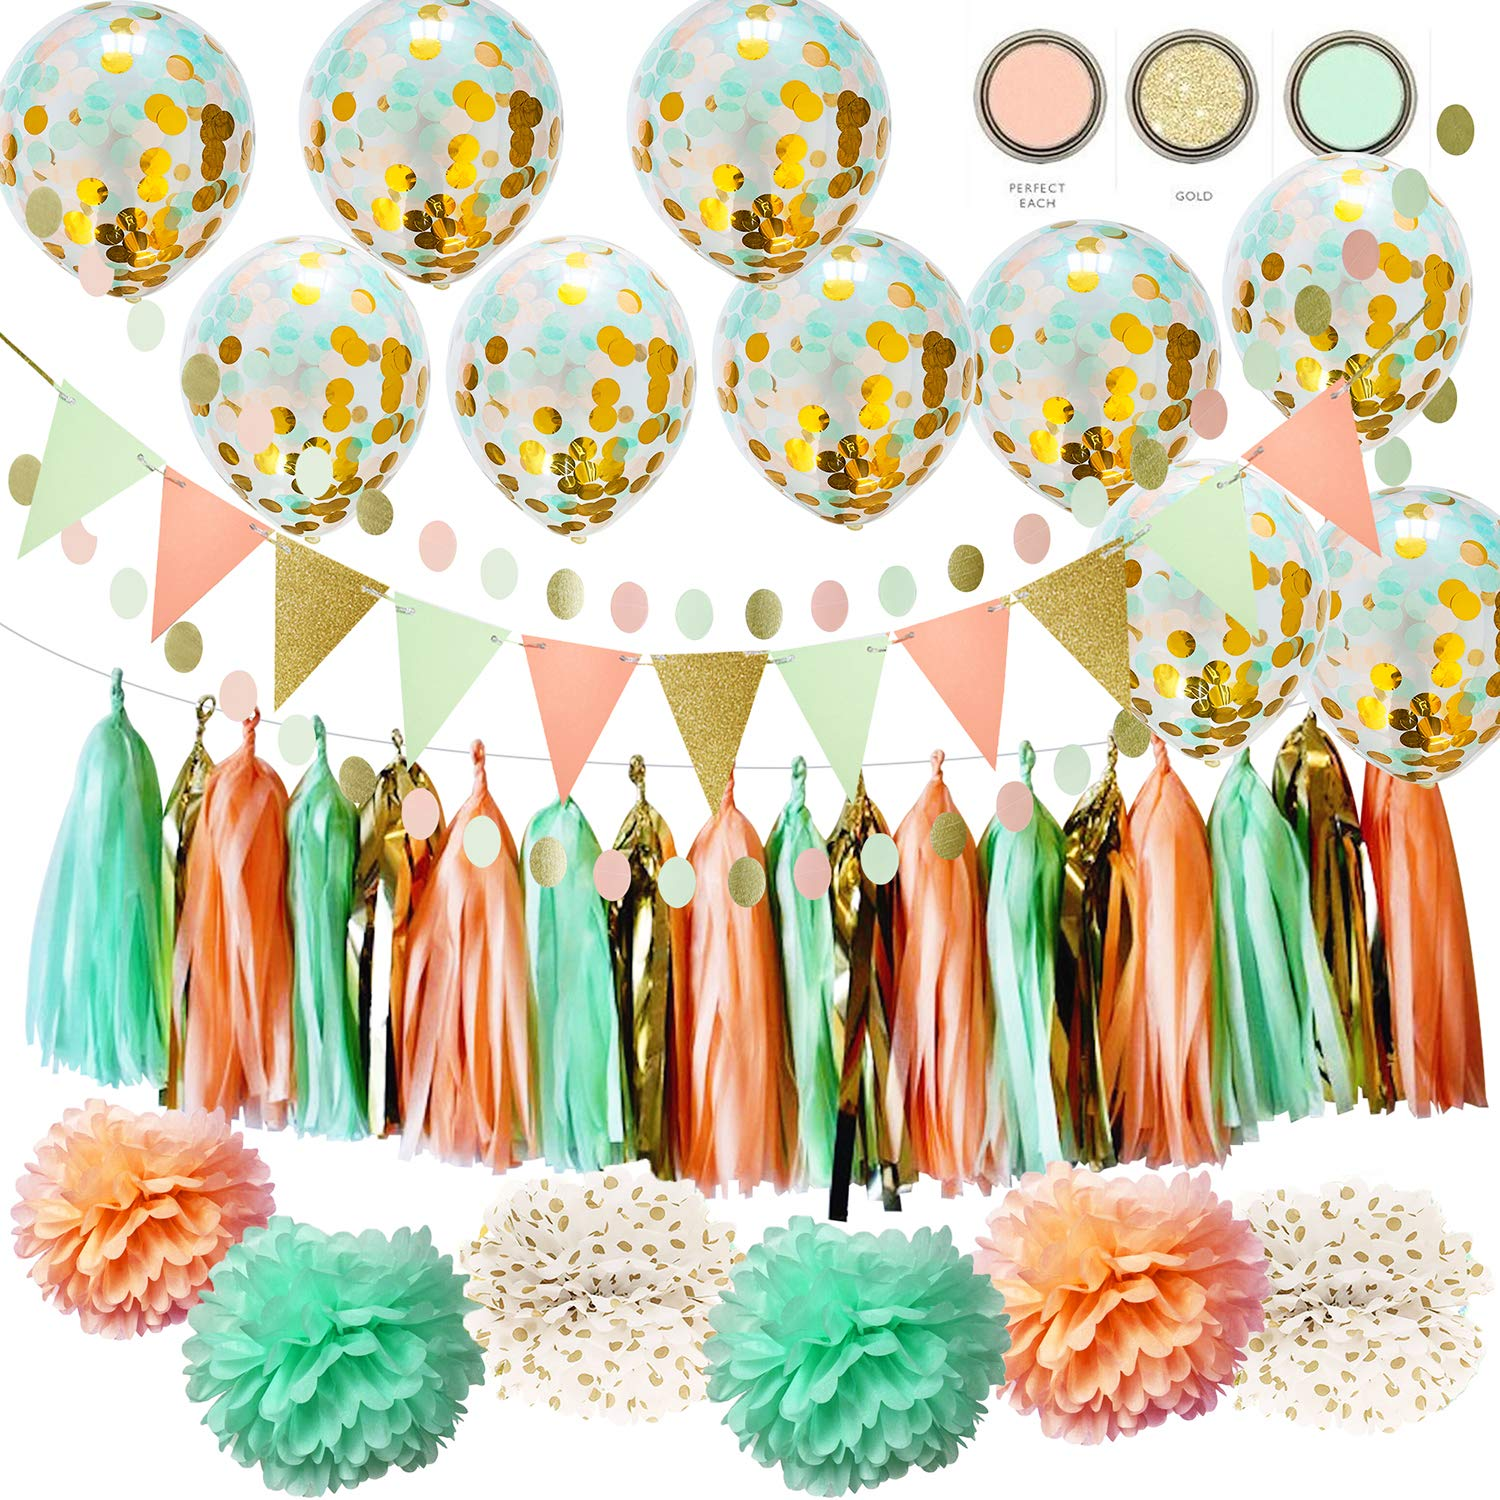 Qian's Party Wild One Birthday Decorations Mint Peach Gold Polka Dot Pom Pom Mint Peach Gold Confetti Balloons for Girl Baby Shower Decorations Peach Mint Bridal Shower Decorations Gold Glitter by Qian's Party